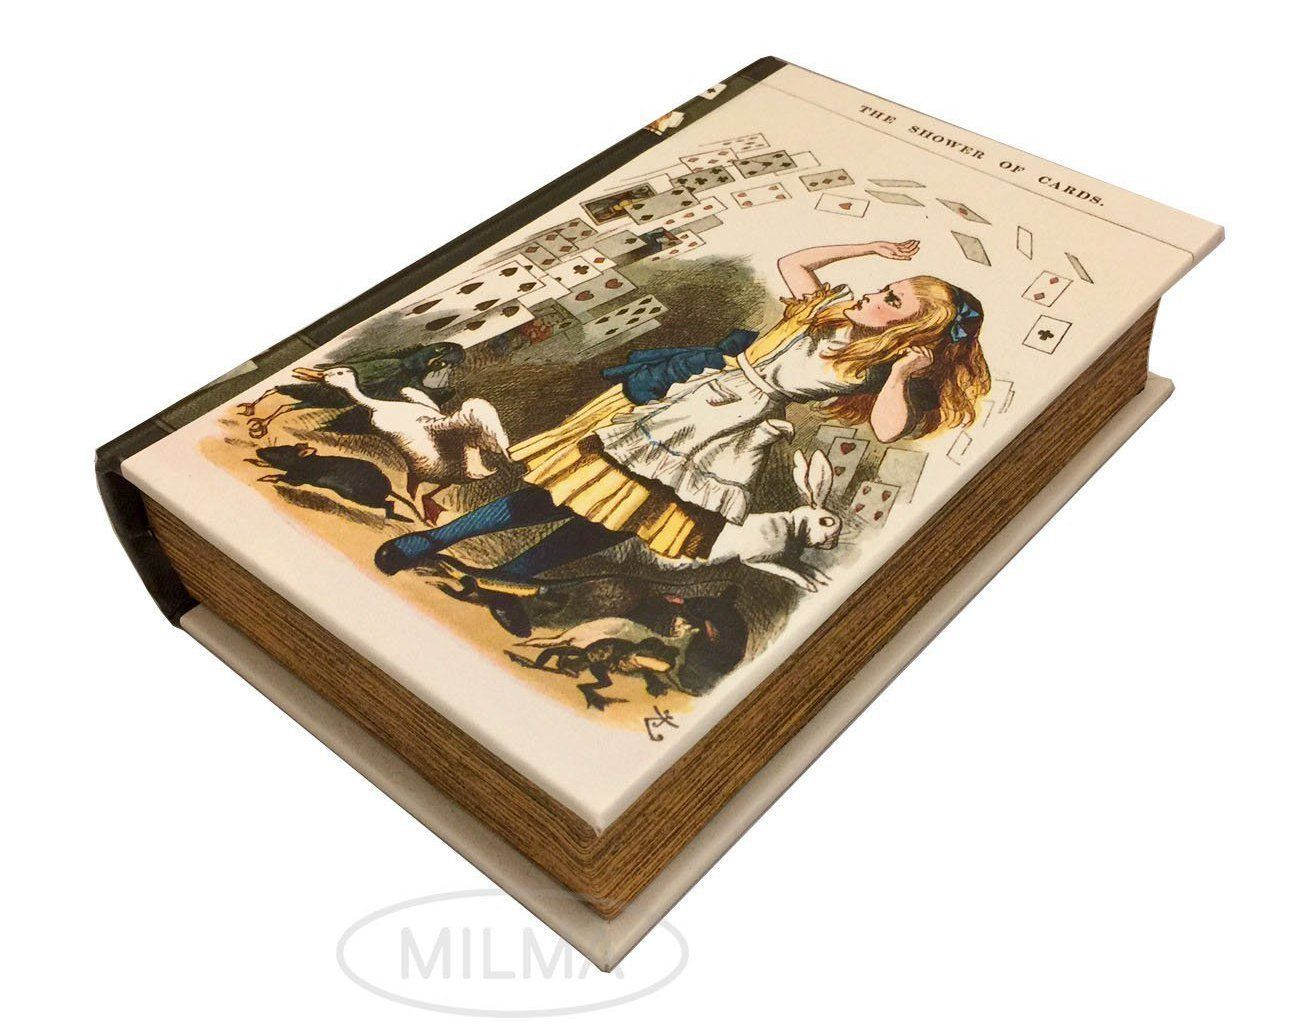 Primary image for The Shower of Cards from Alice in Wonderland Book Box Leather Over Wood